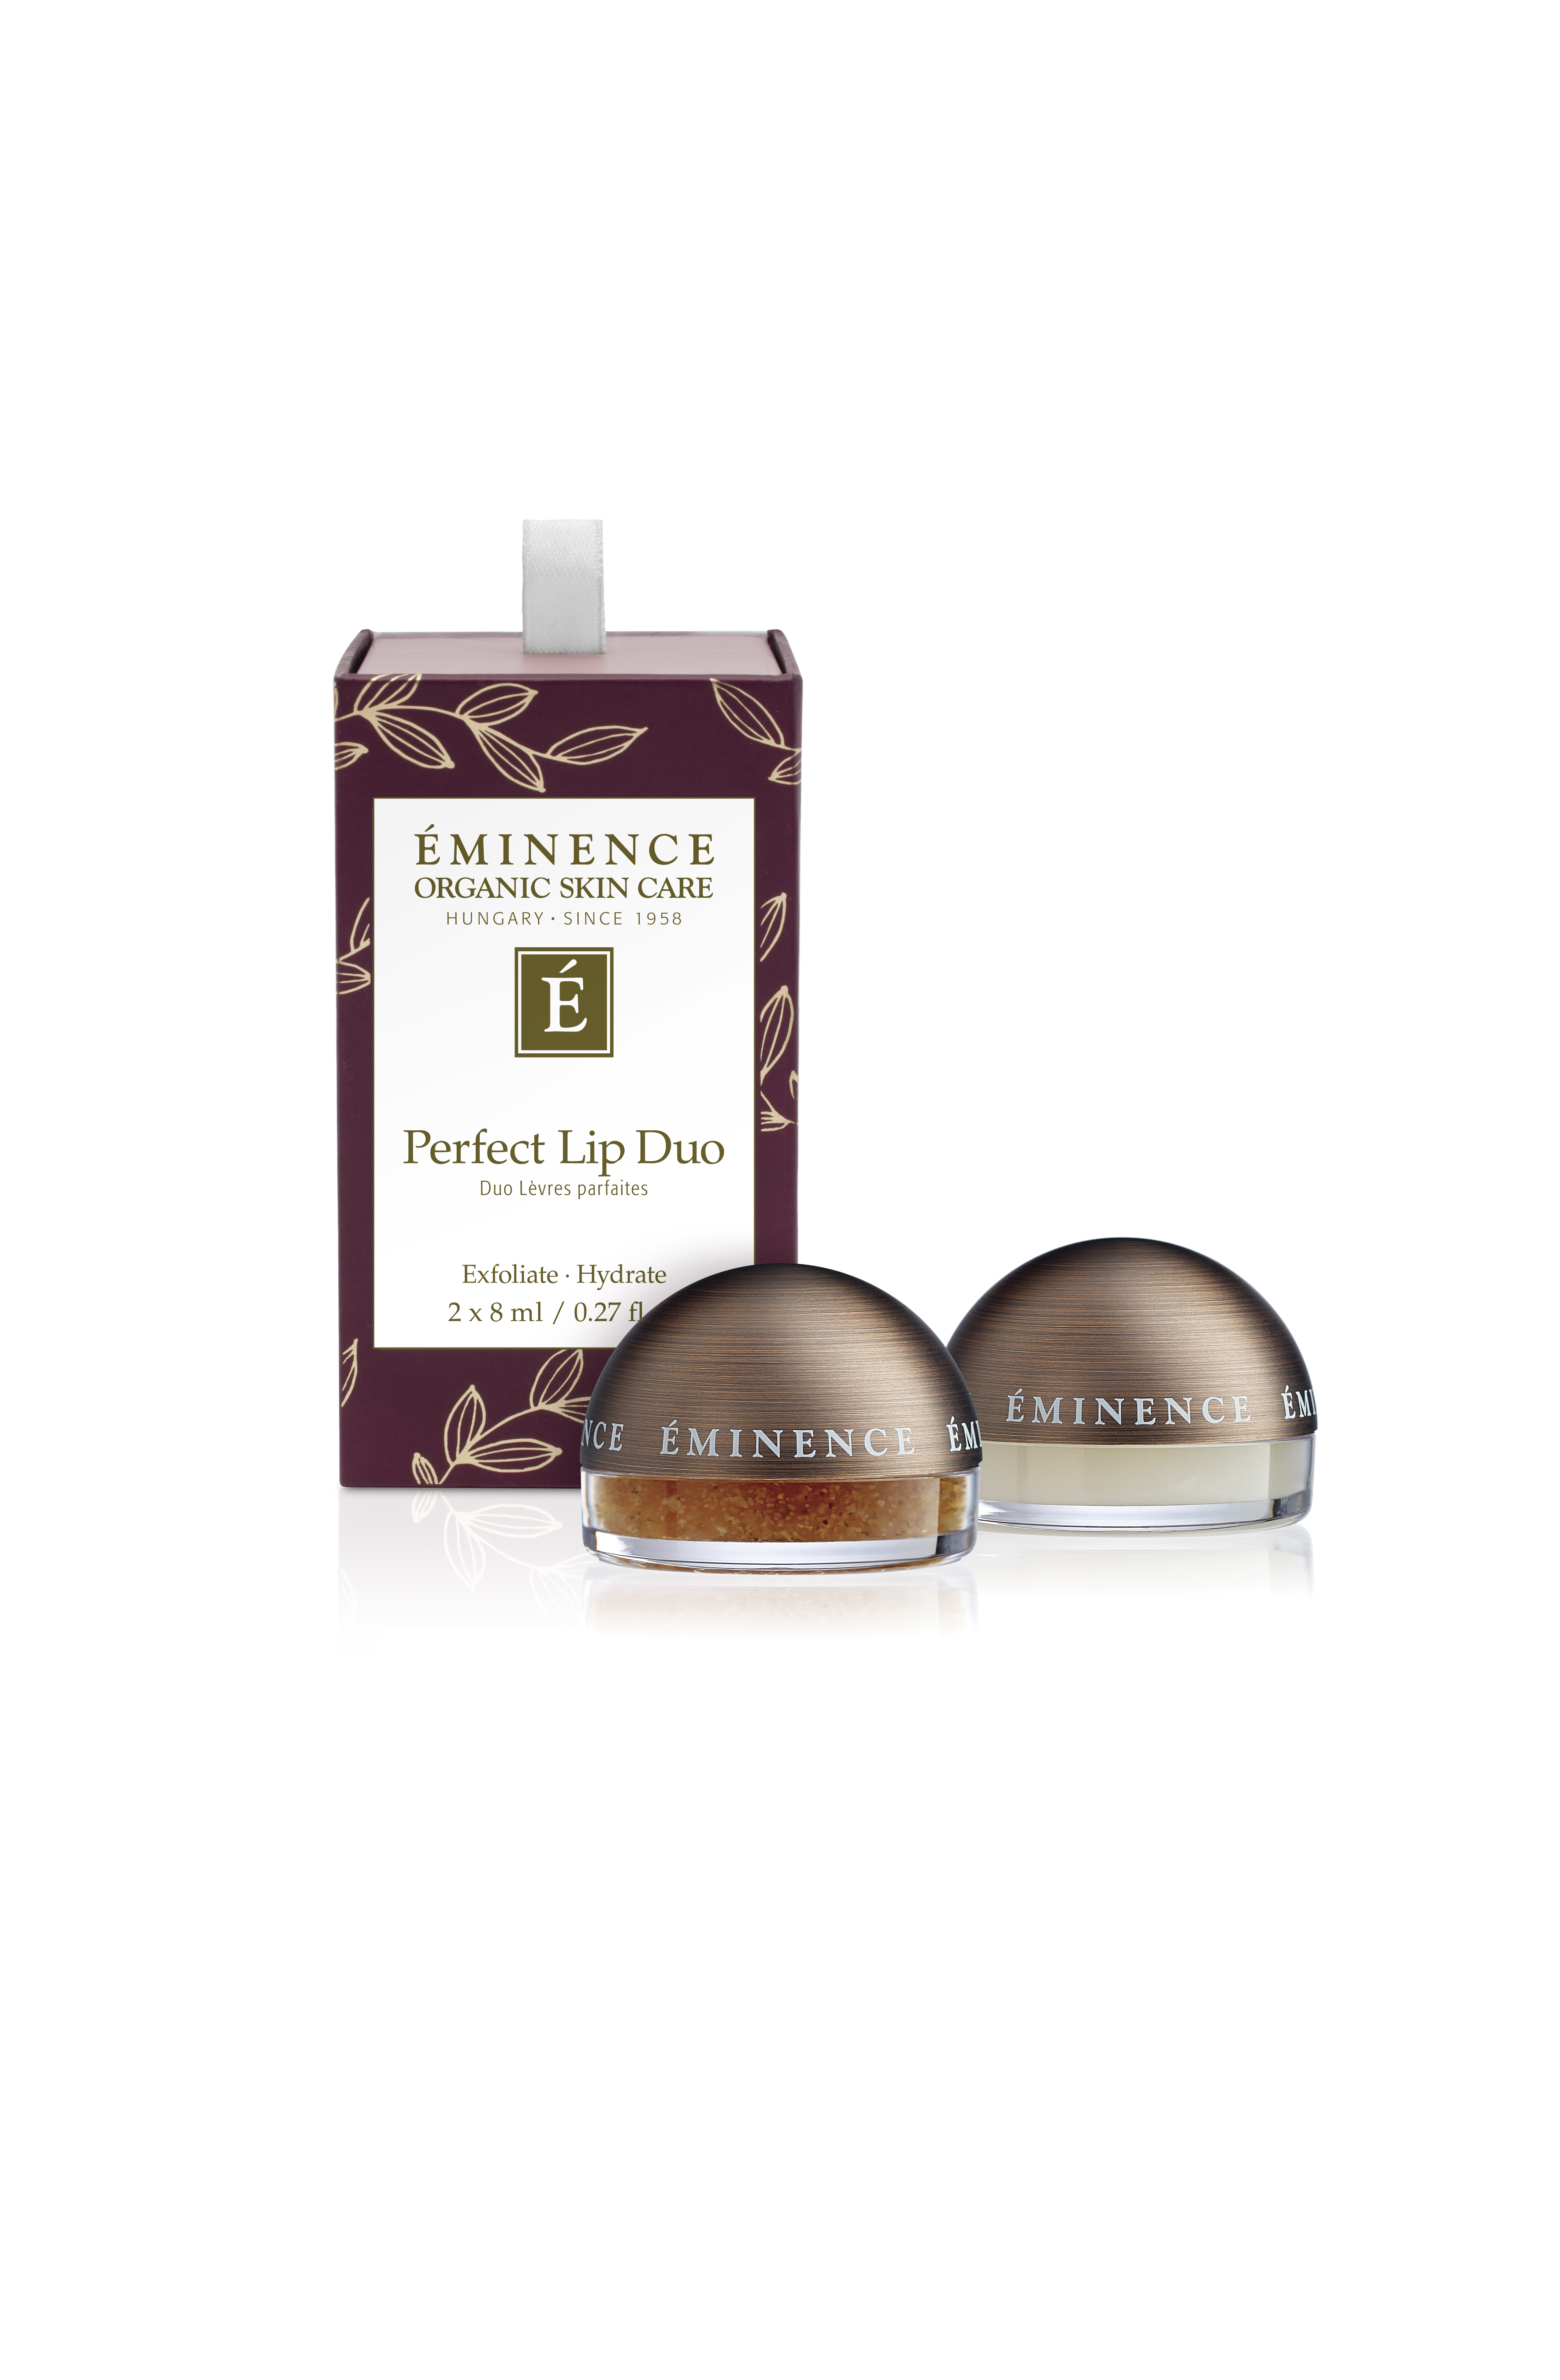 eminence-organics-perfect-lip-duo-collectionbox